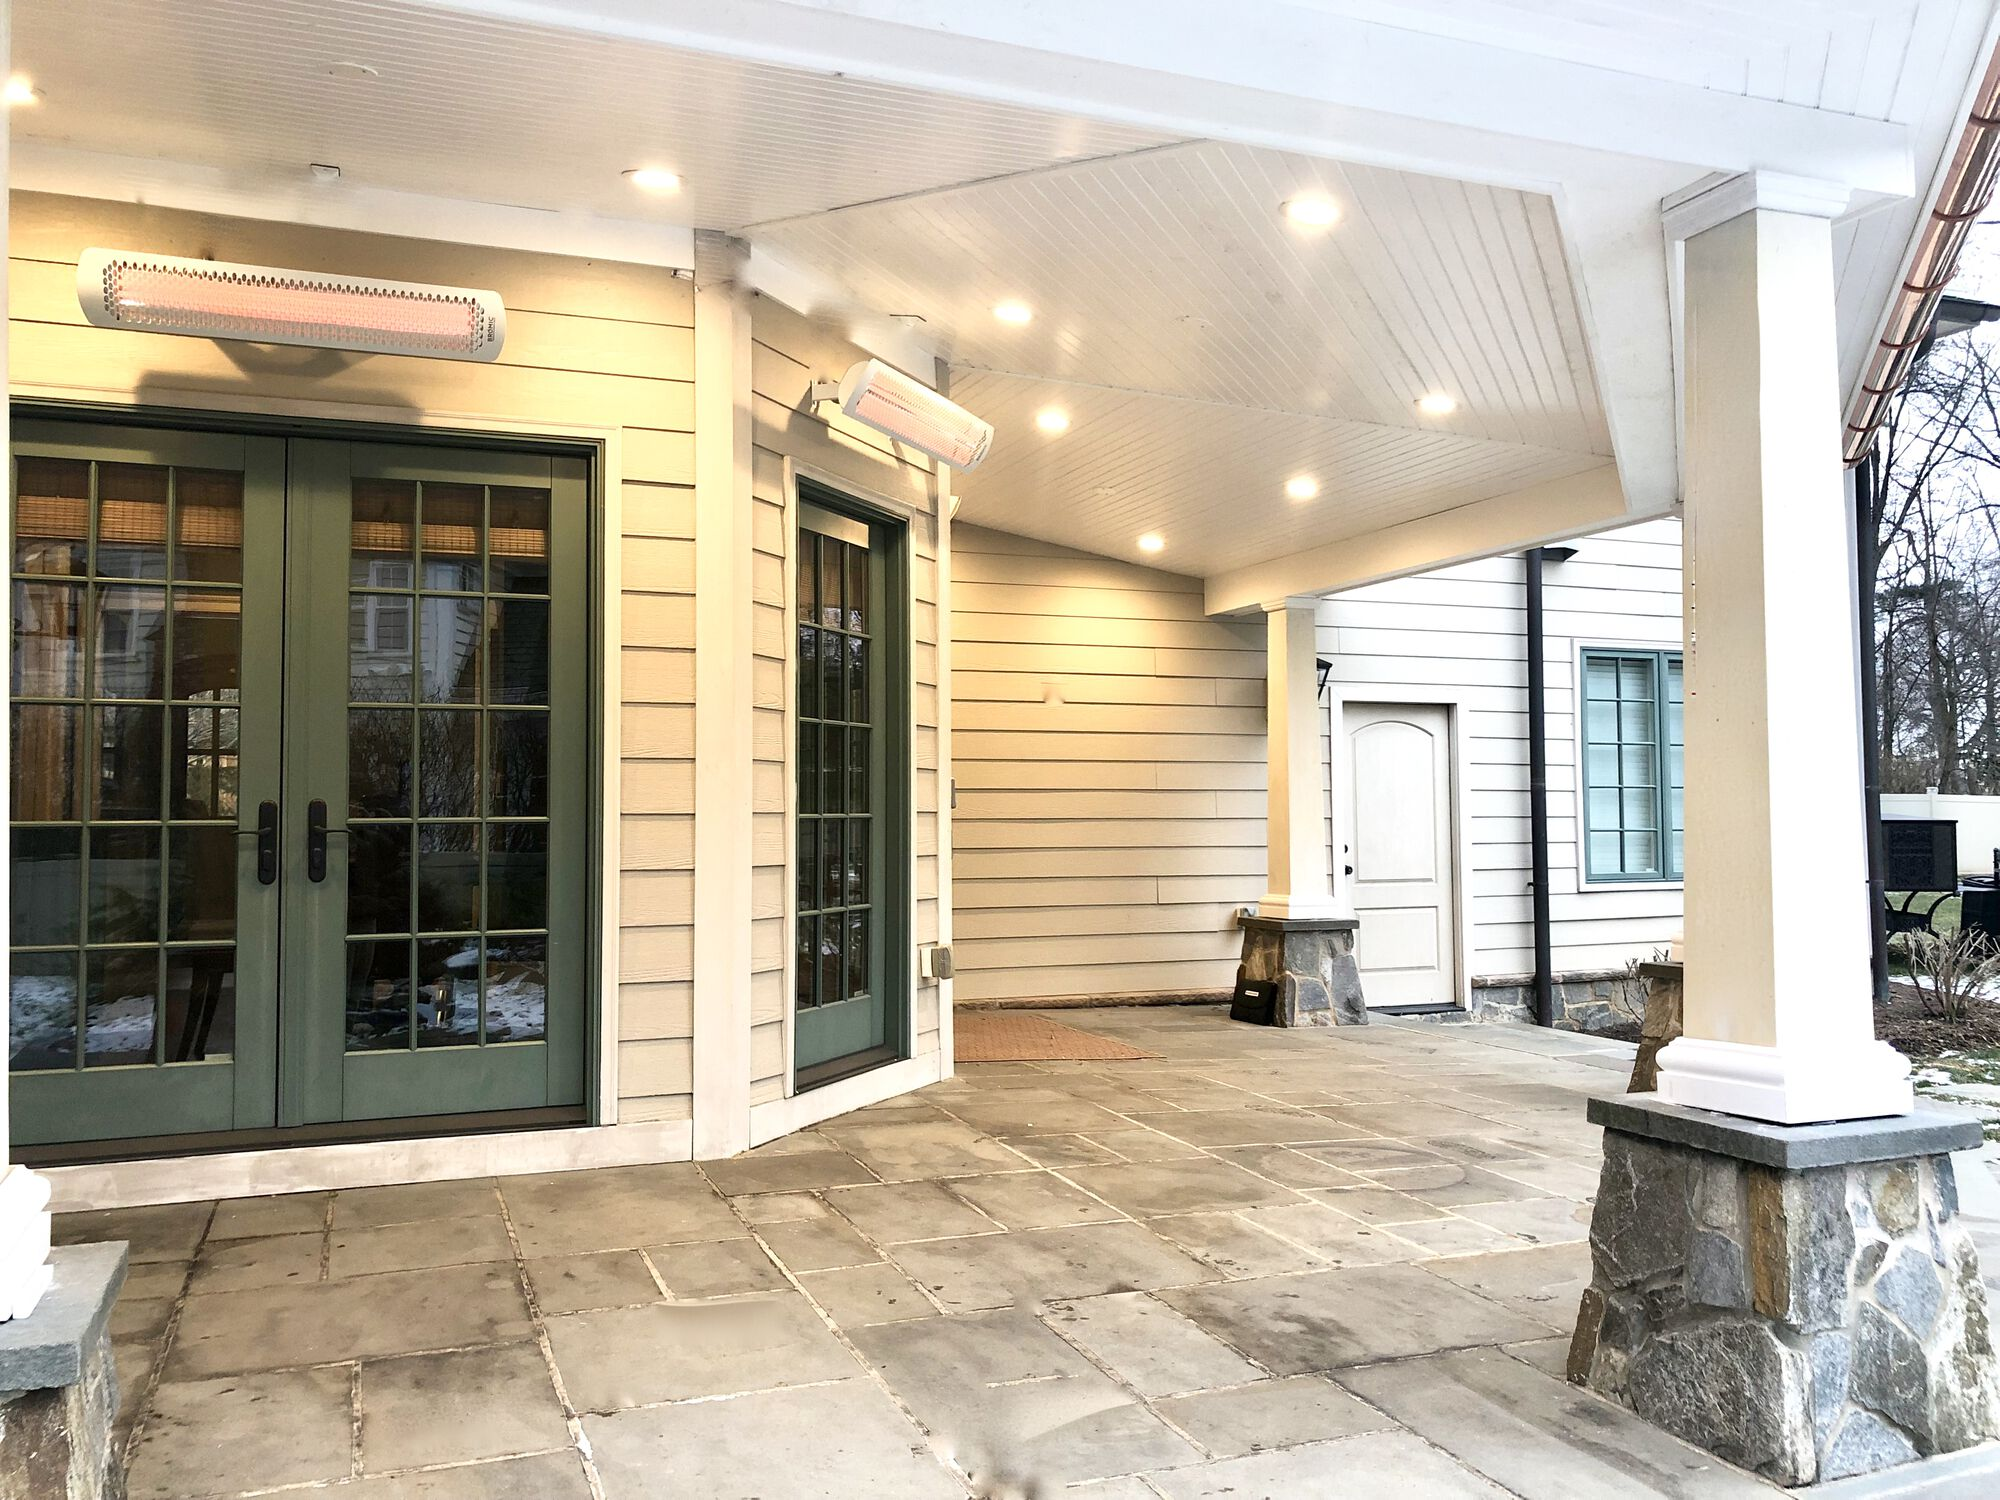 Covered Stone Porch with Azek Grooved Ceiling, Led Lighting, Radiant Heaters, in Madison, Morris County NJ